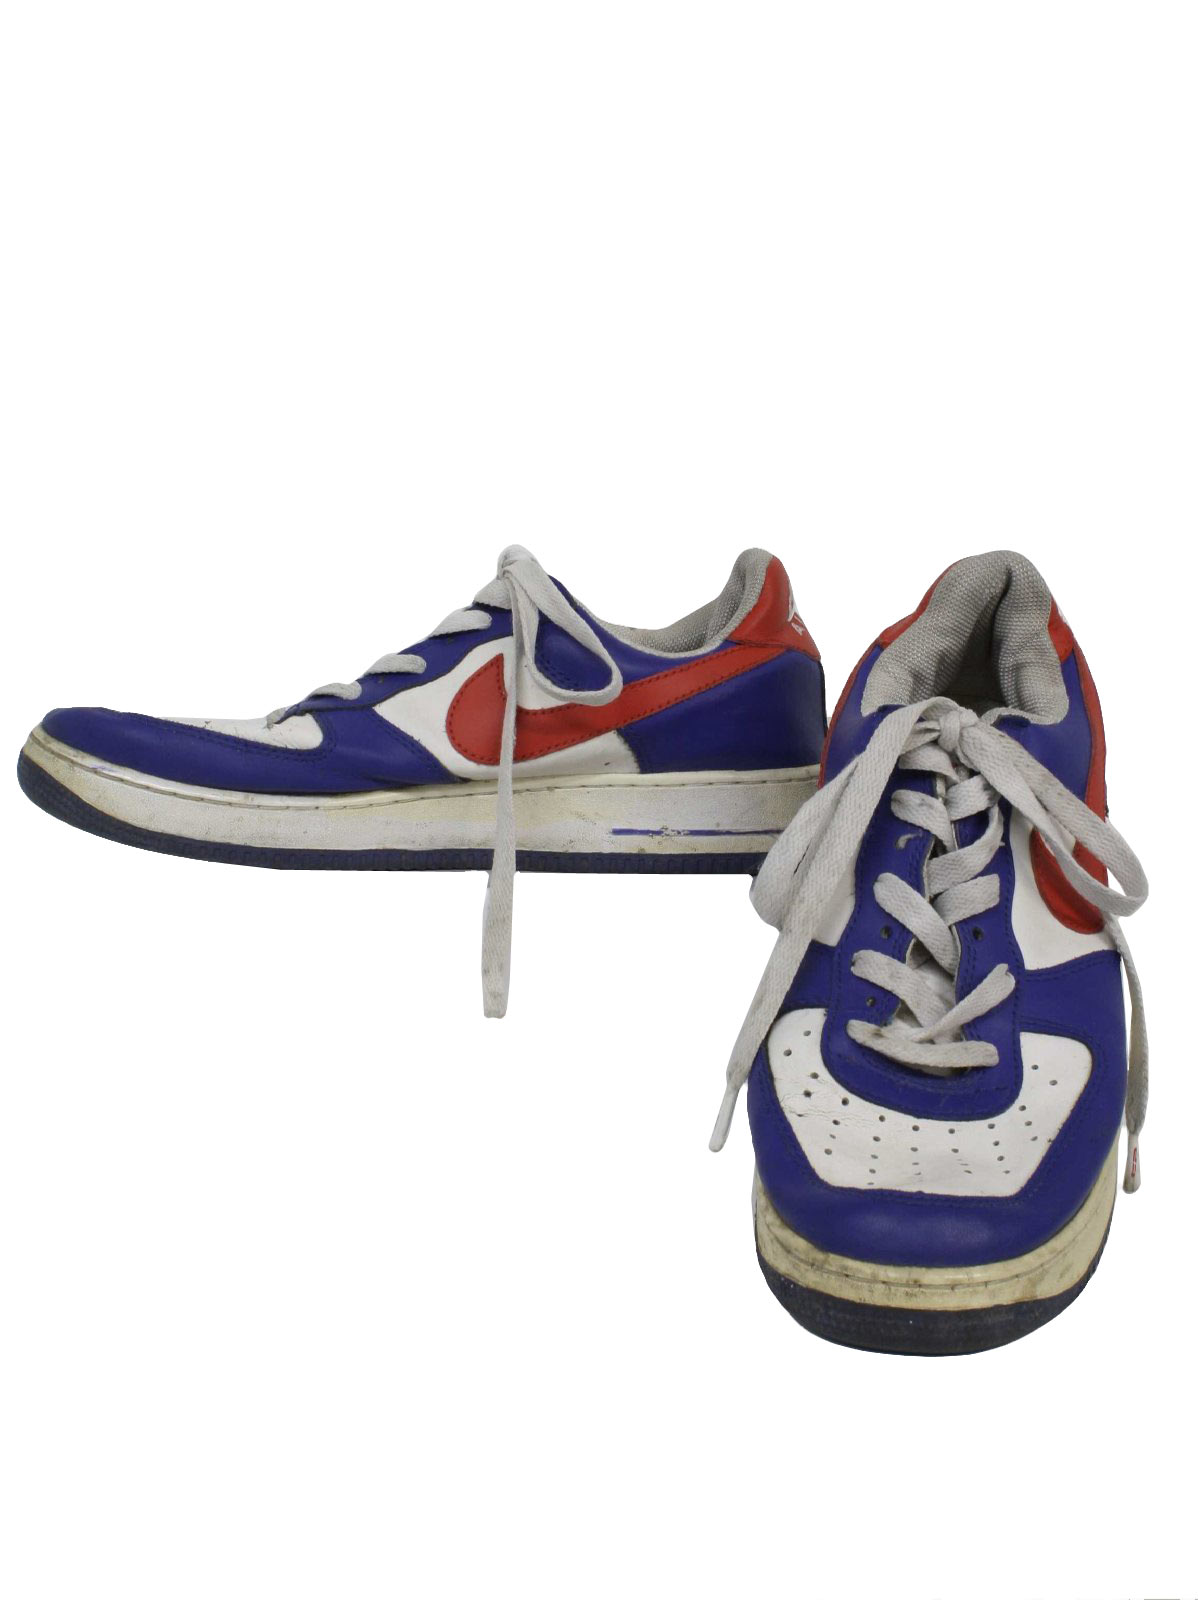 Nike Air Force 1 Nineties Vintage Shoes: 90s -Nike Air Force 1- Mens blue,  white and red flat bottom classic old school style tennis shoes with mesh  dot ...